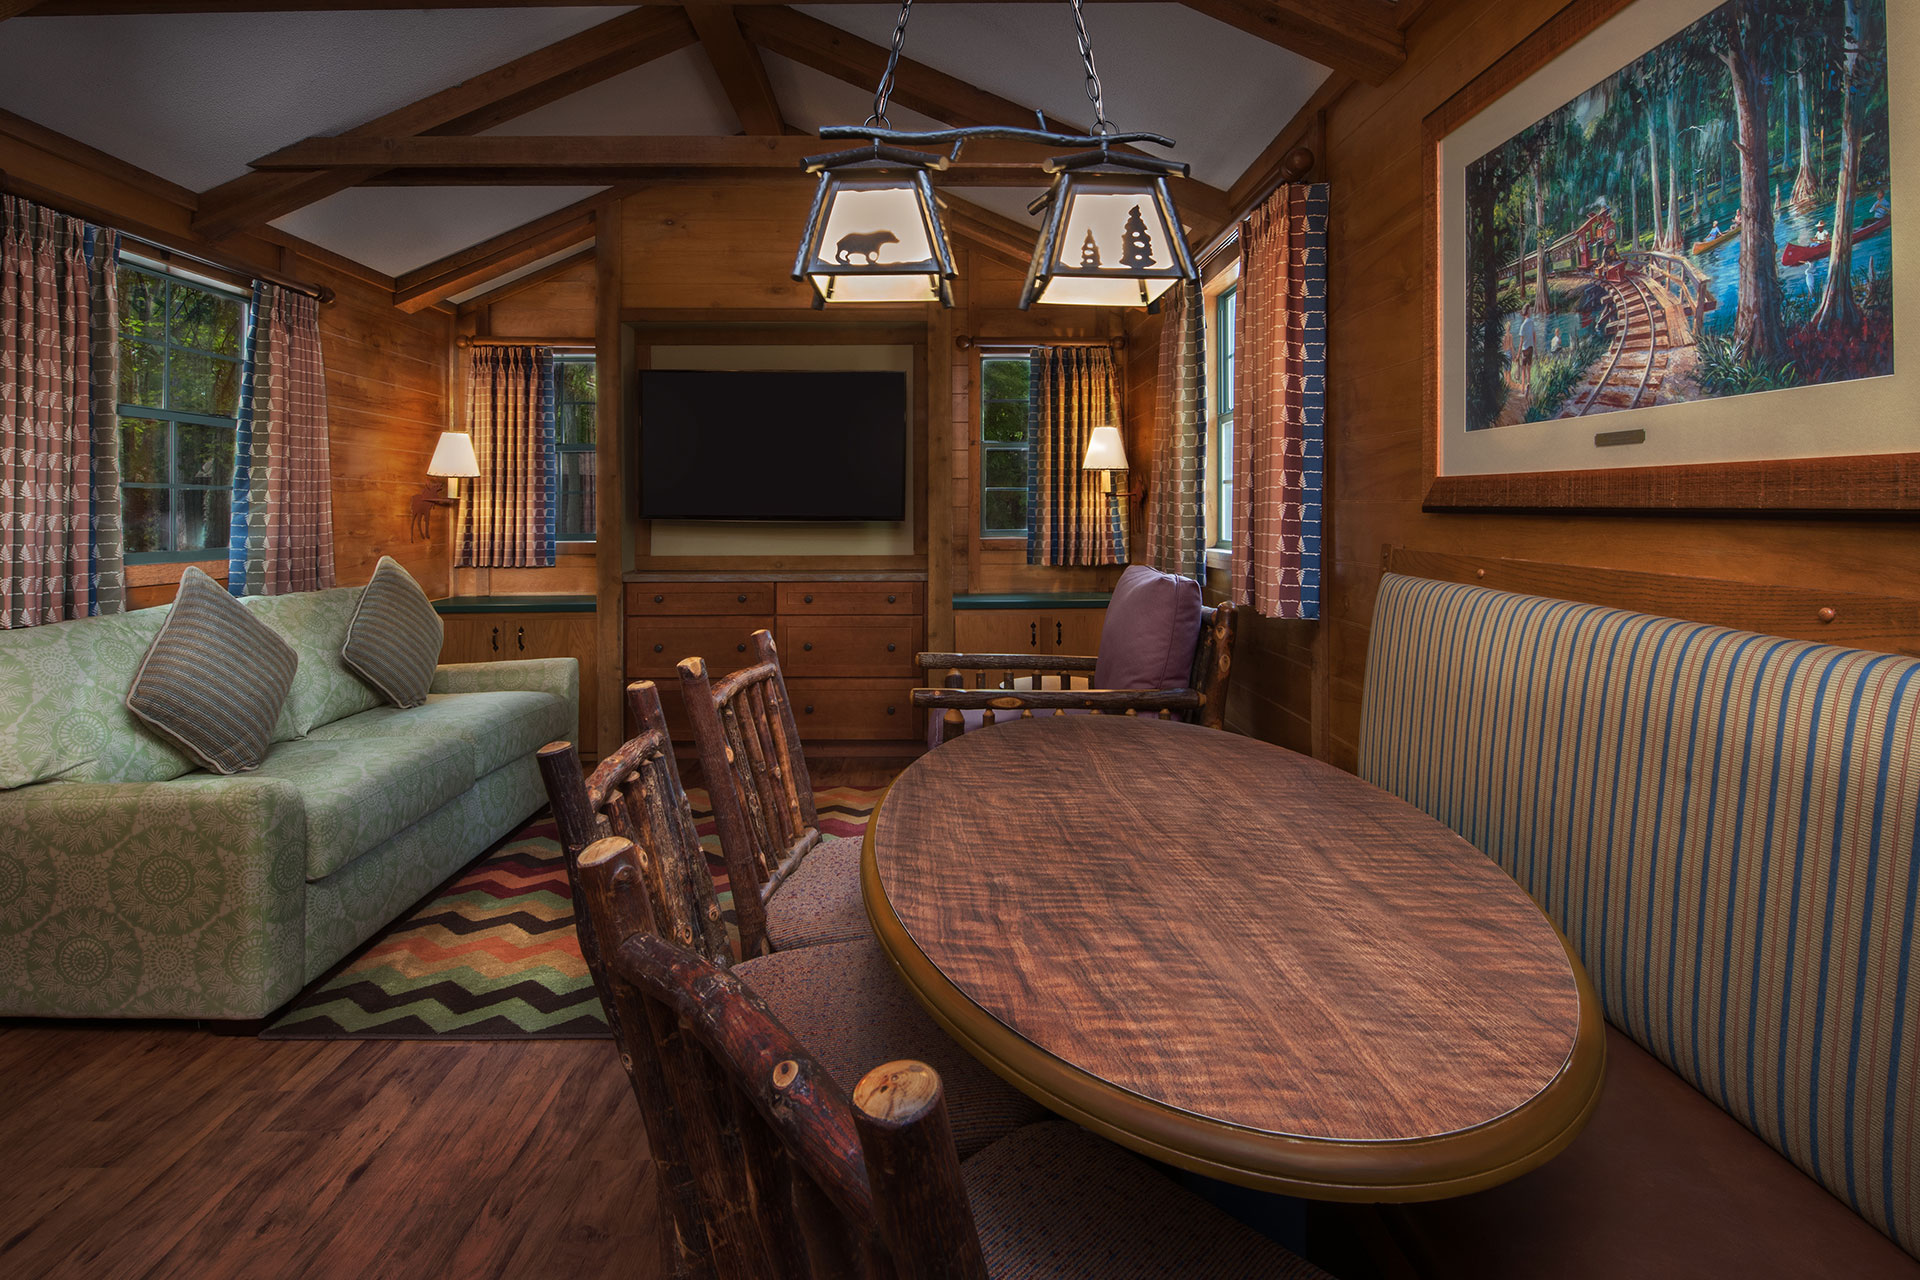 The Cabins at Disney's Fort Wilderness Resort; Courtesy of Disney